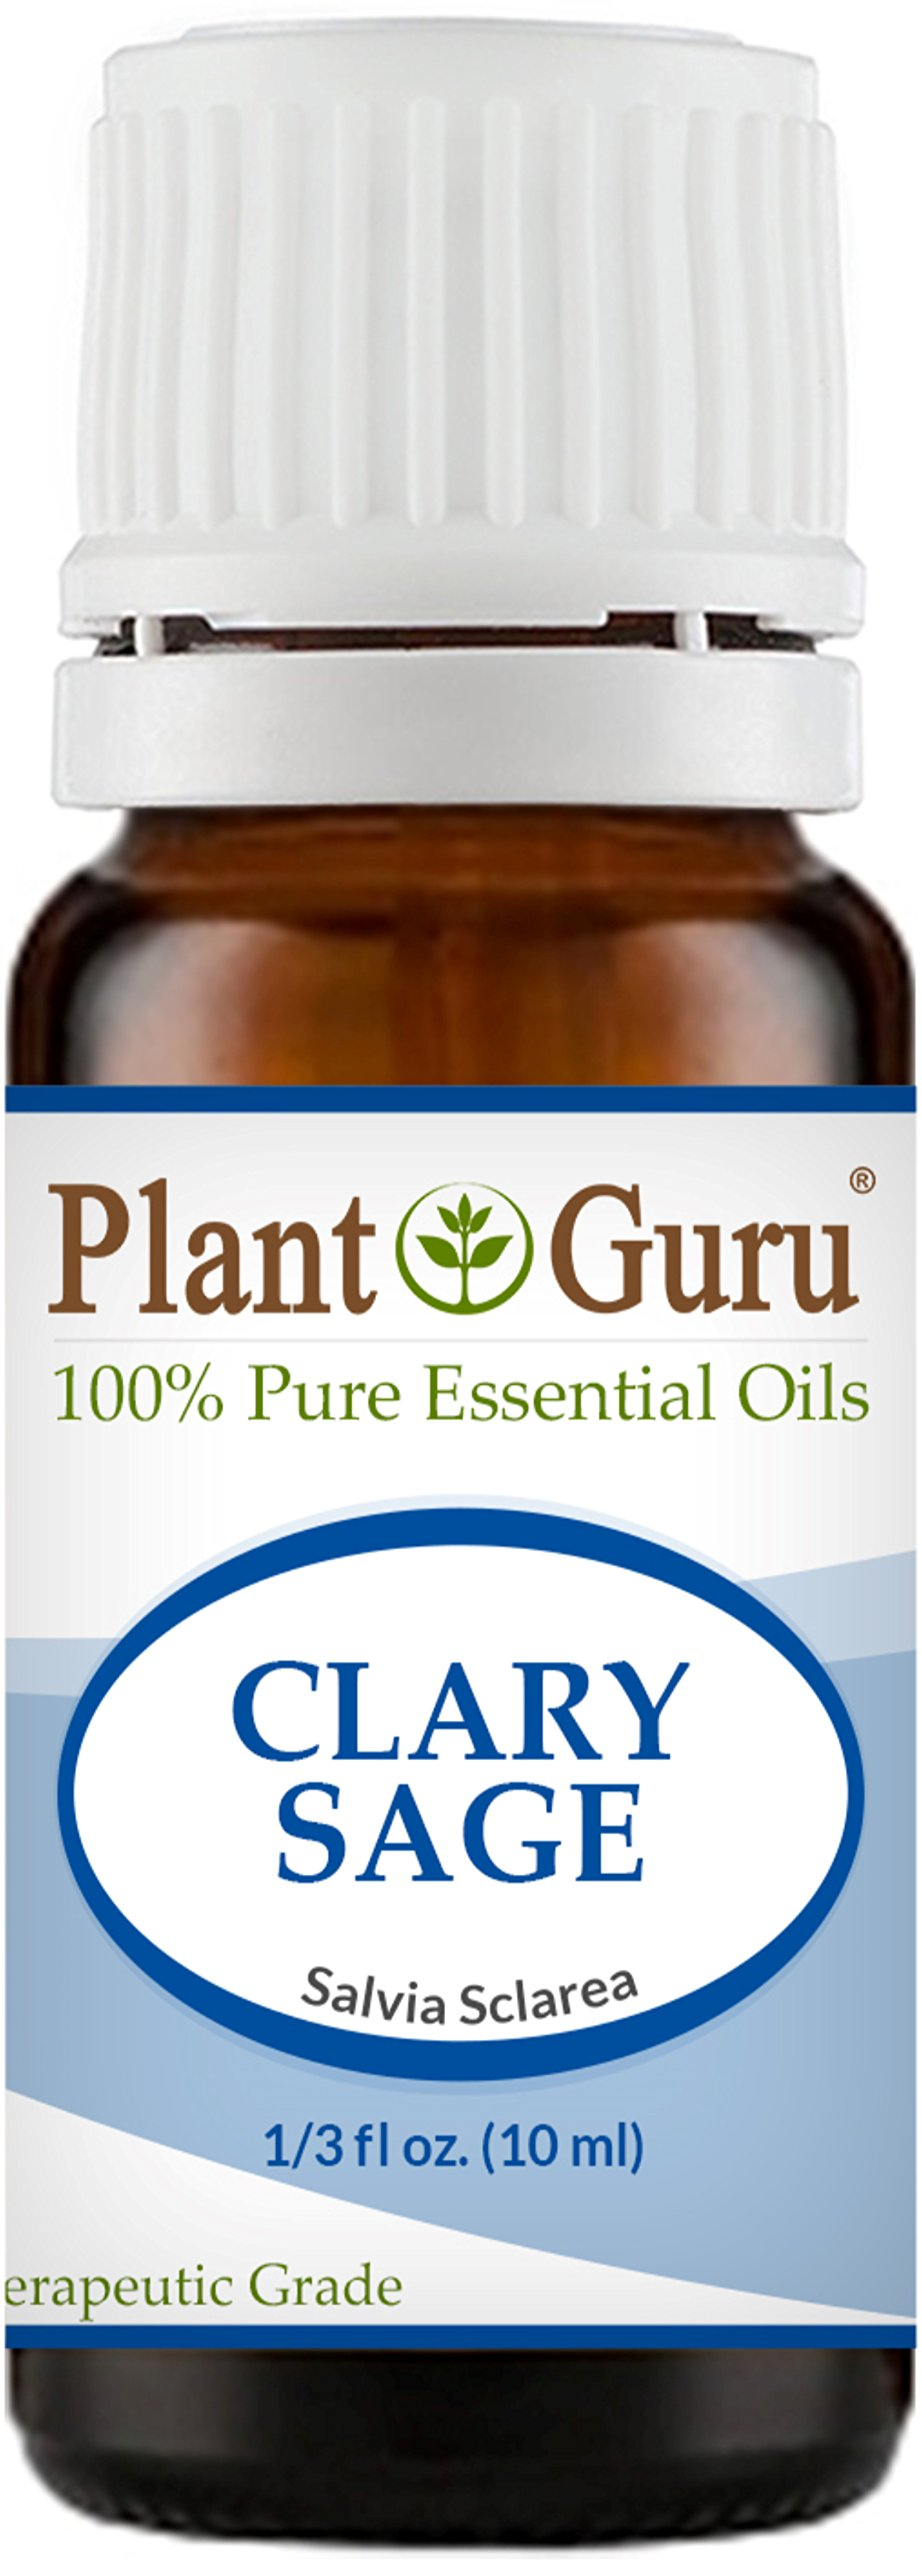 Clary Sage Essential Oil 10 ml. 100% Pure Undiluted Therapeutic Grade.